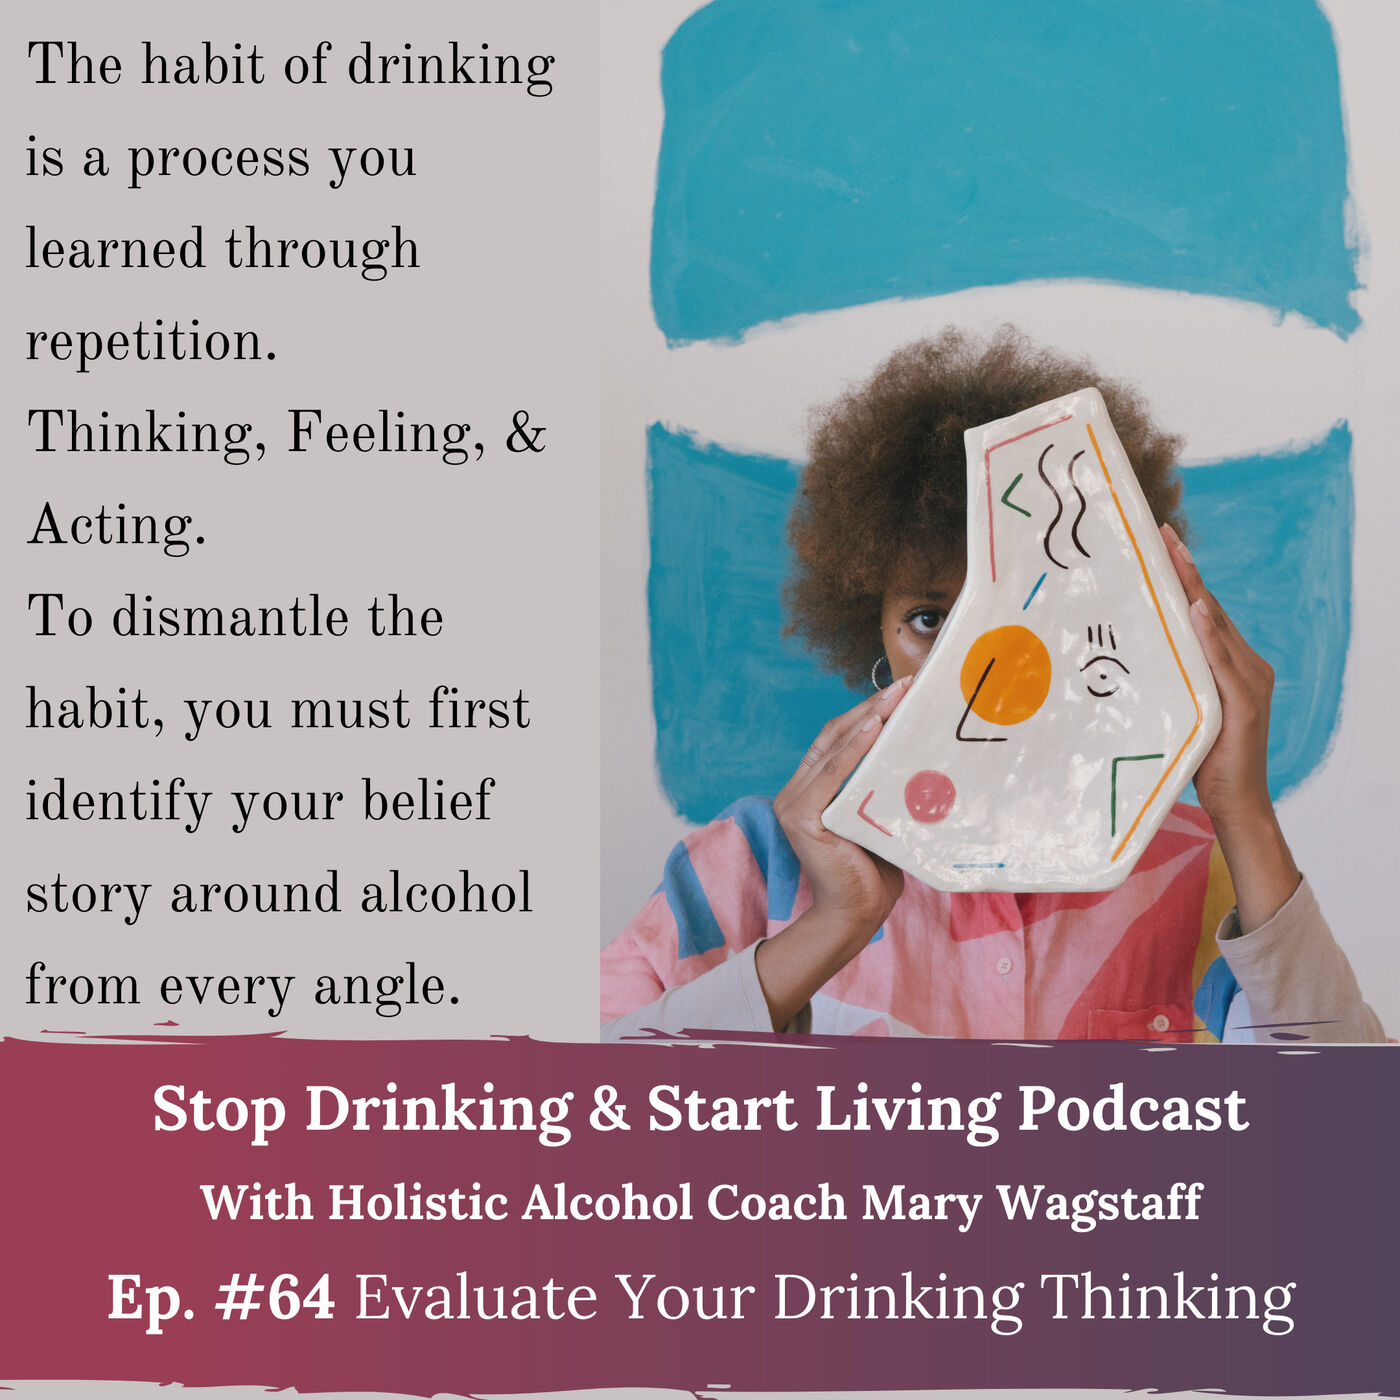 Ep. #64 Evaluate Your Drinking Thinking